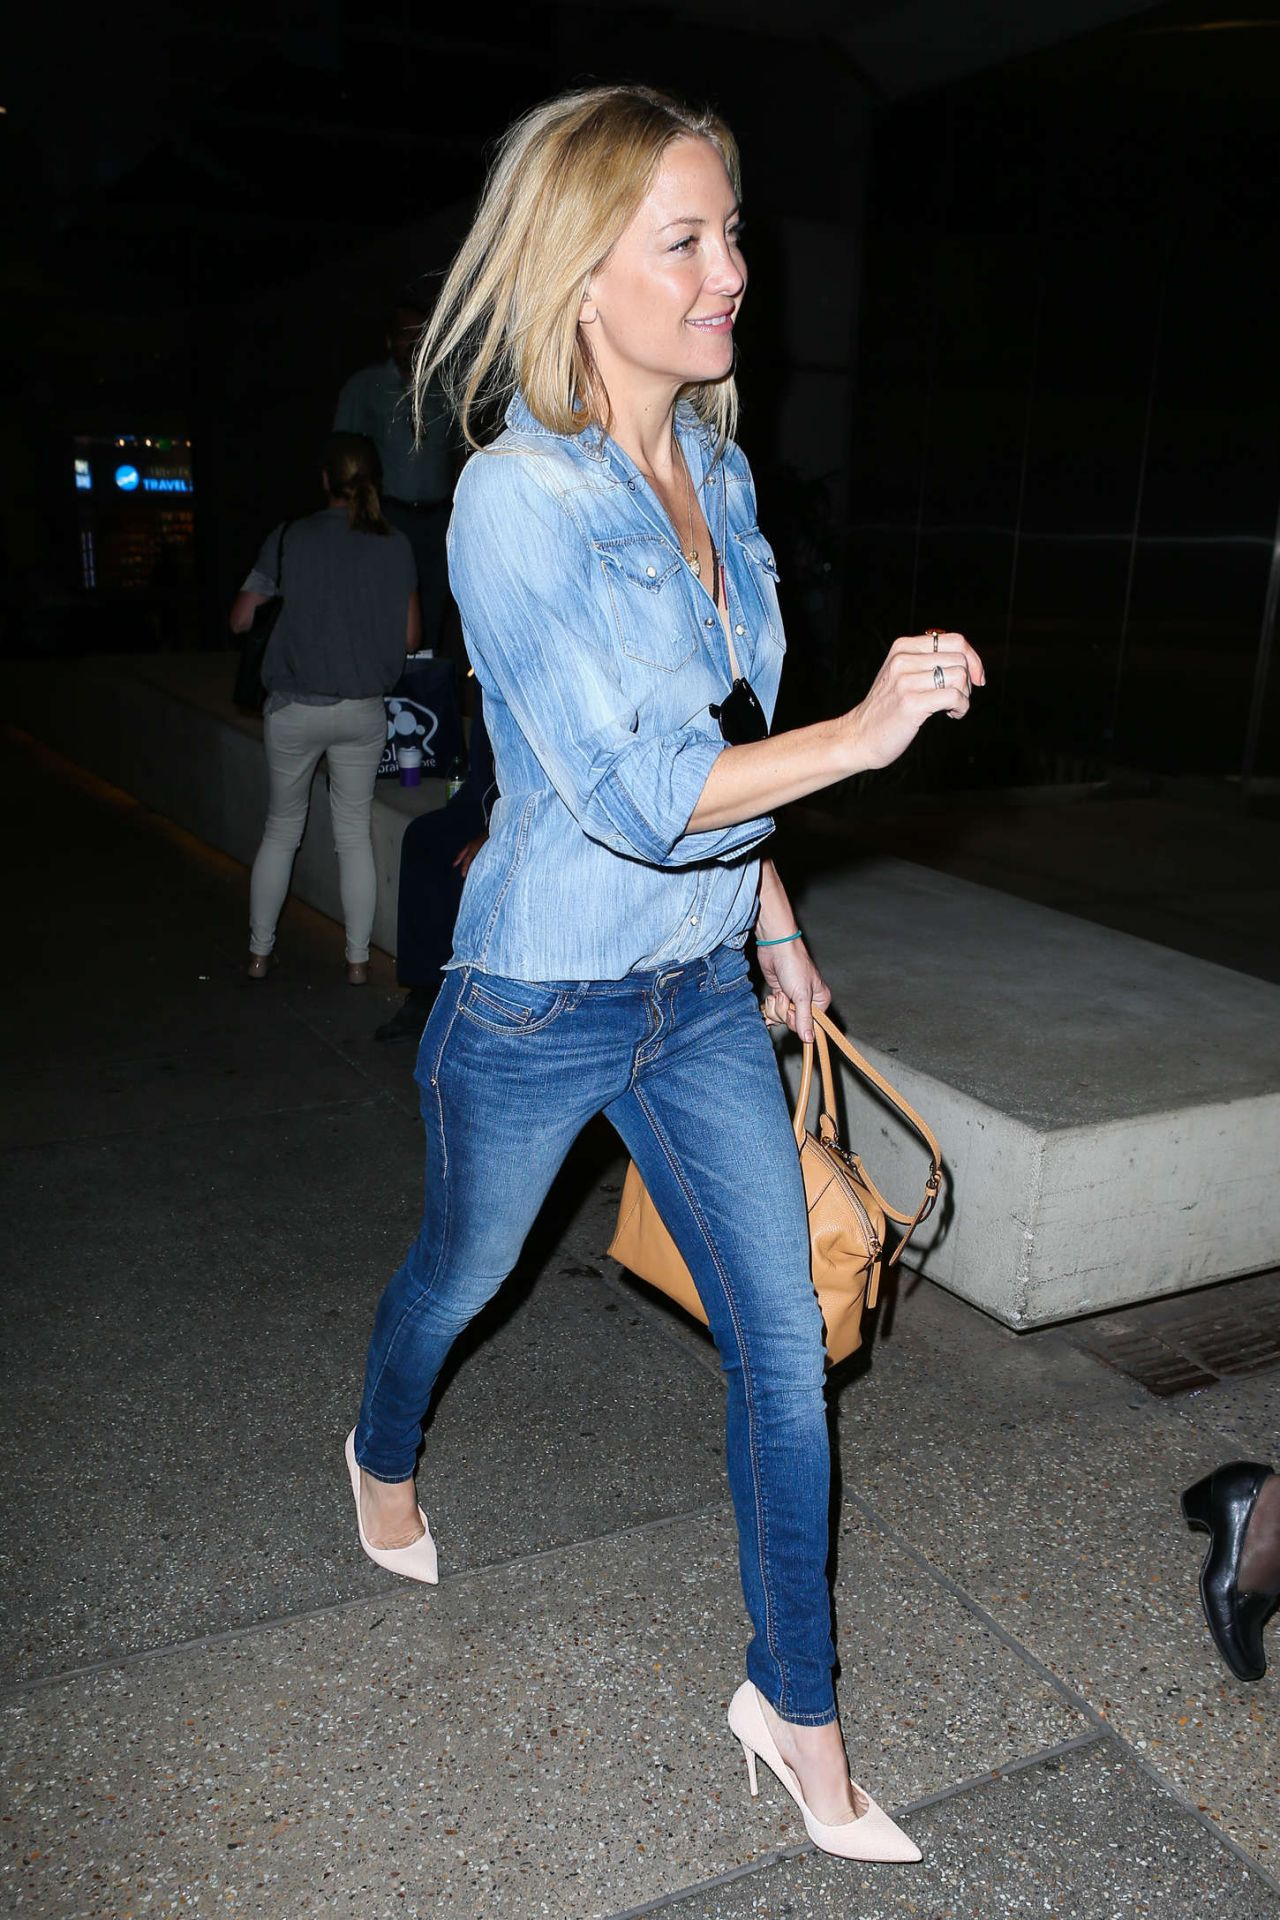 Kate hudson at lax airport april 2015 kate hudson in jeans lax